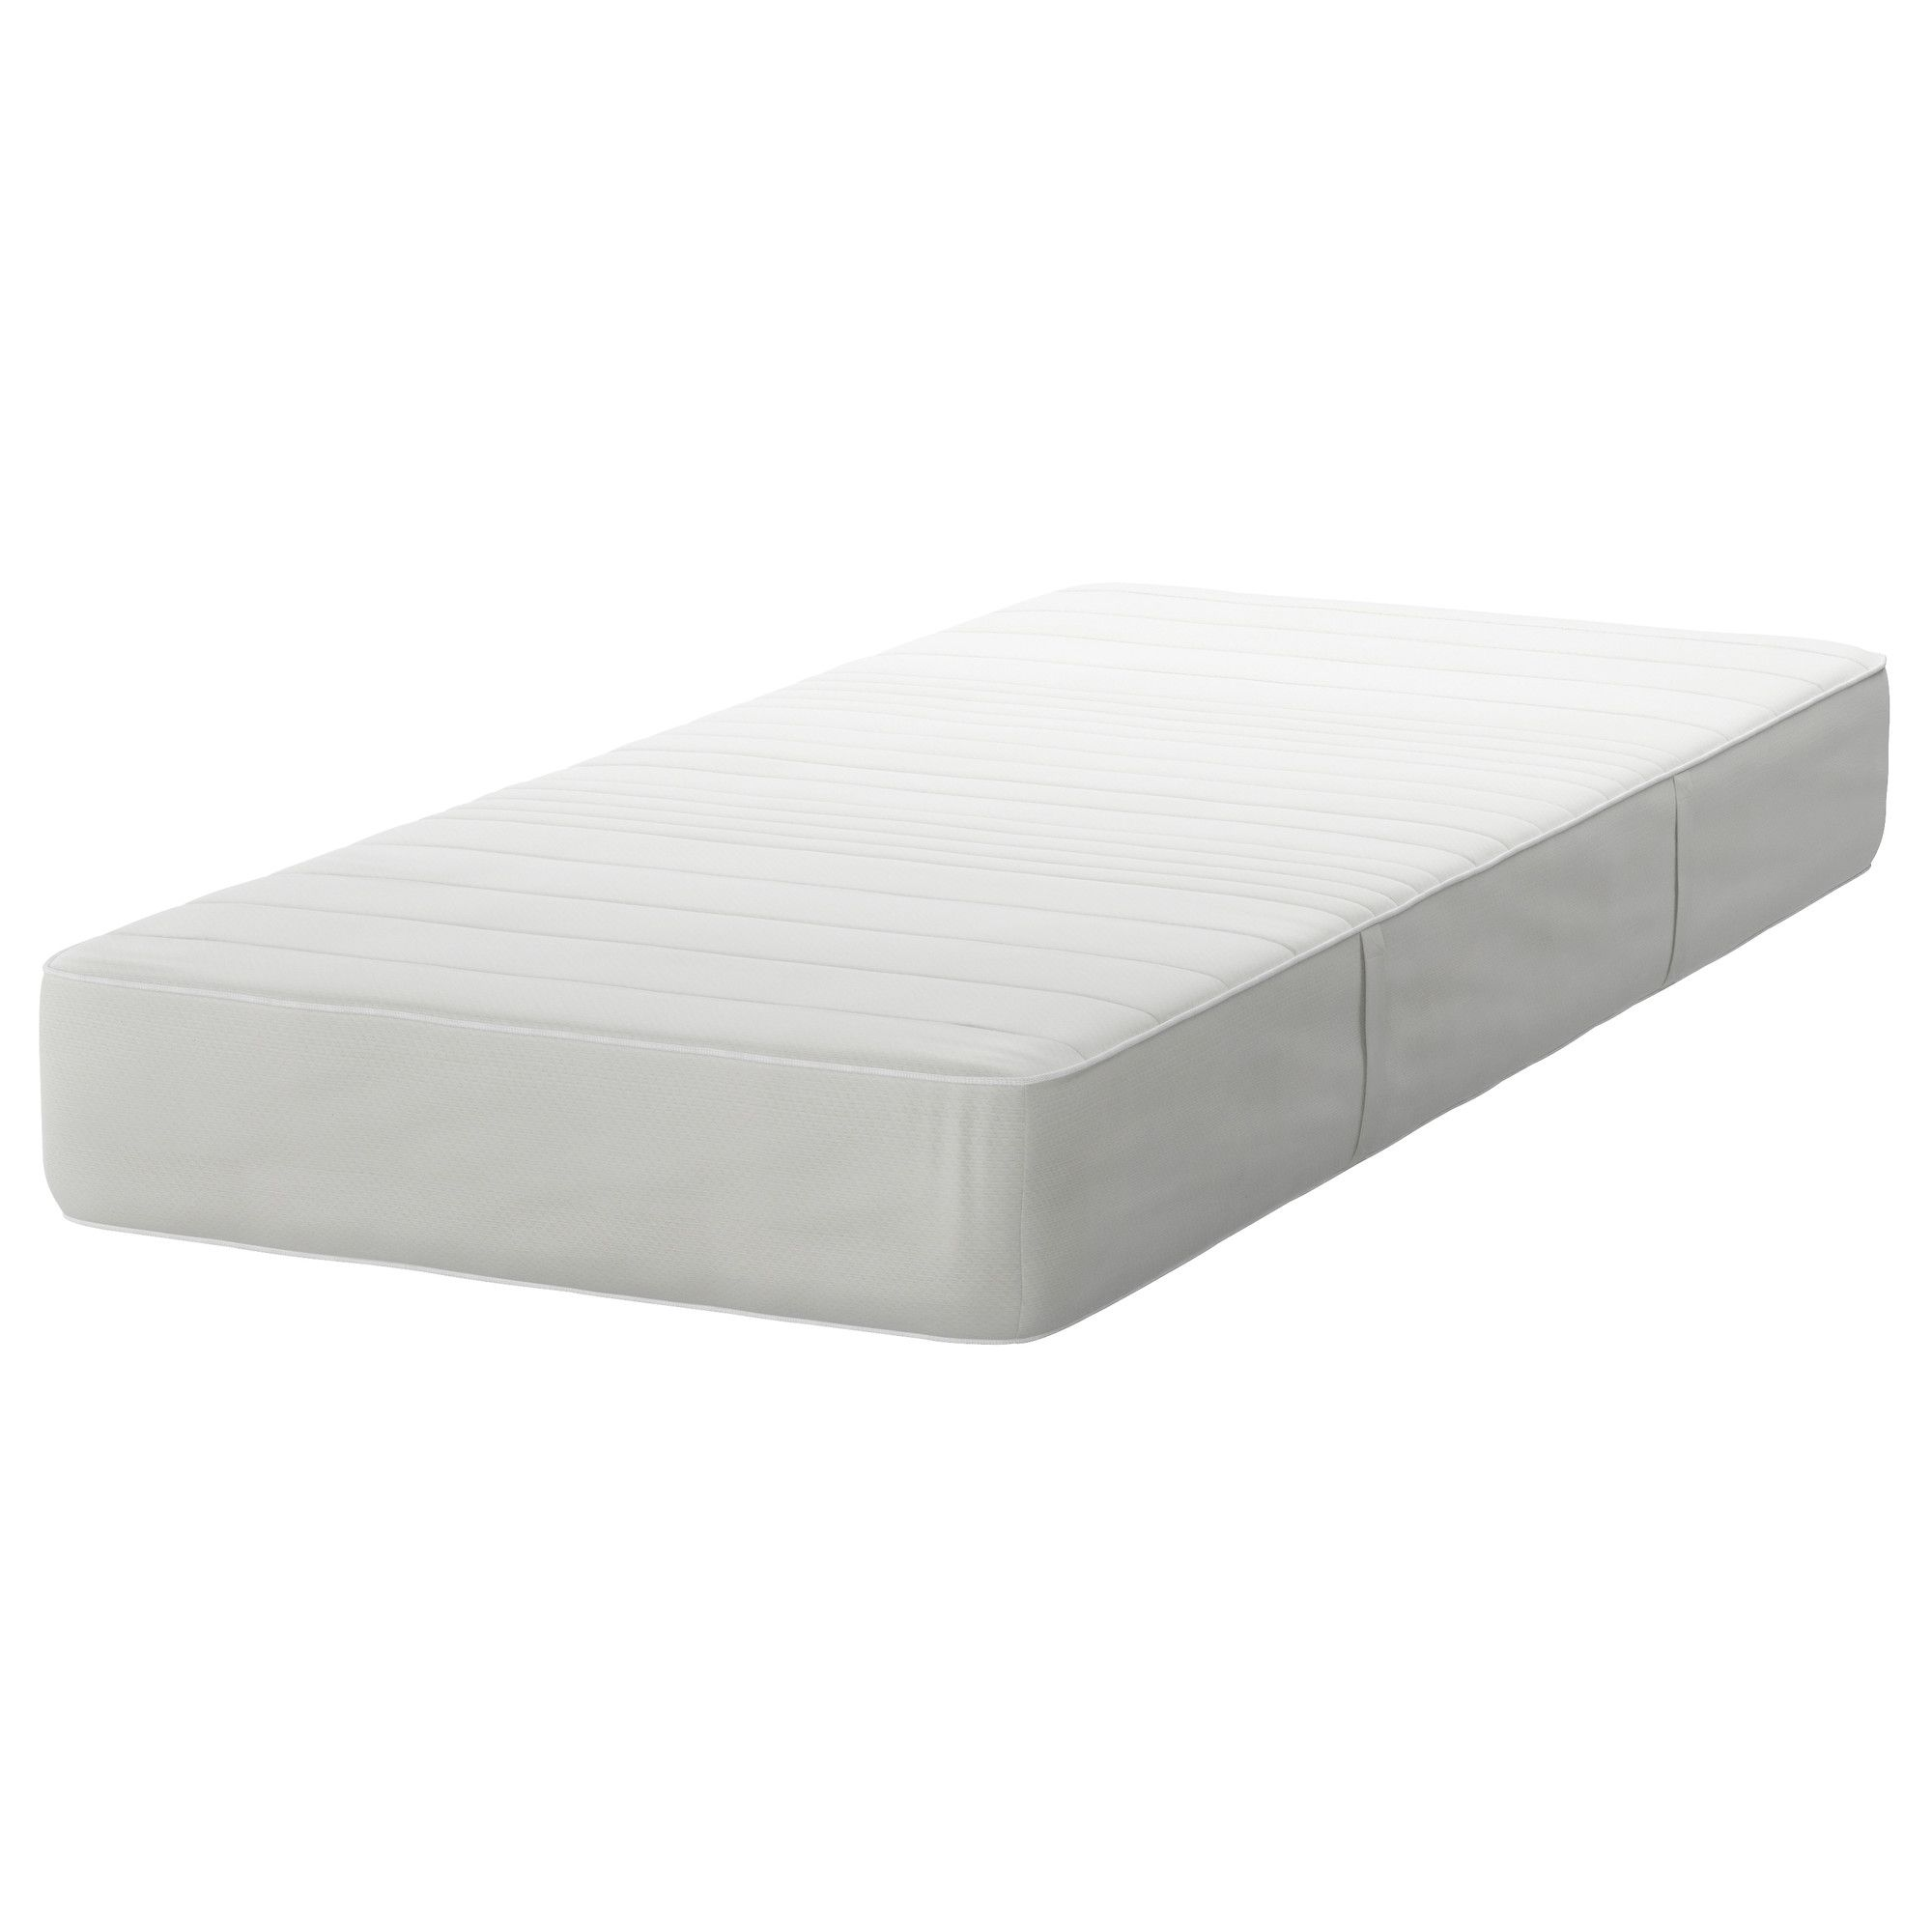 Sultan Flokenes Memory Foam Mattress Full Ikea 430 This Was Recommended By Andrew